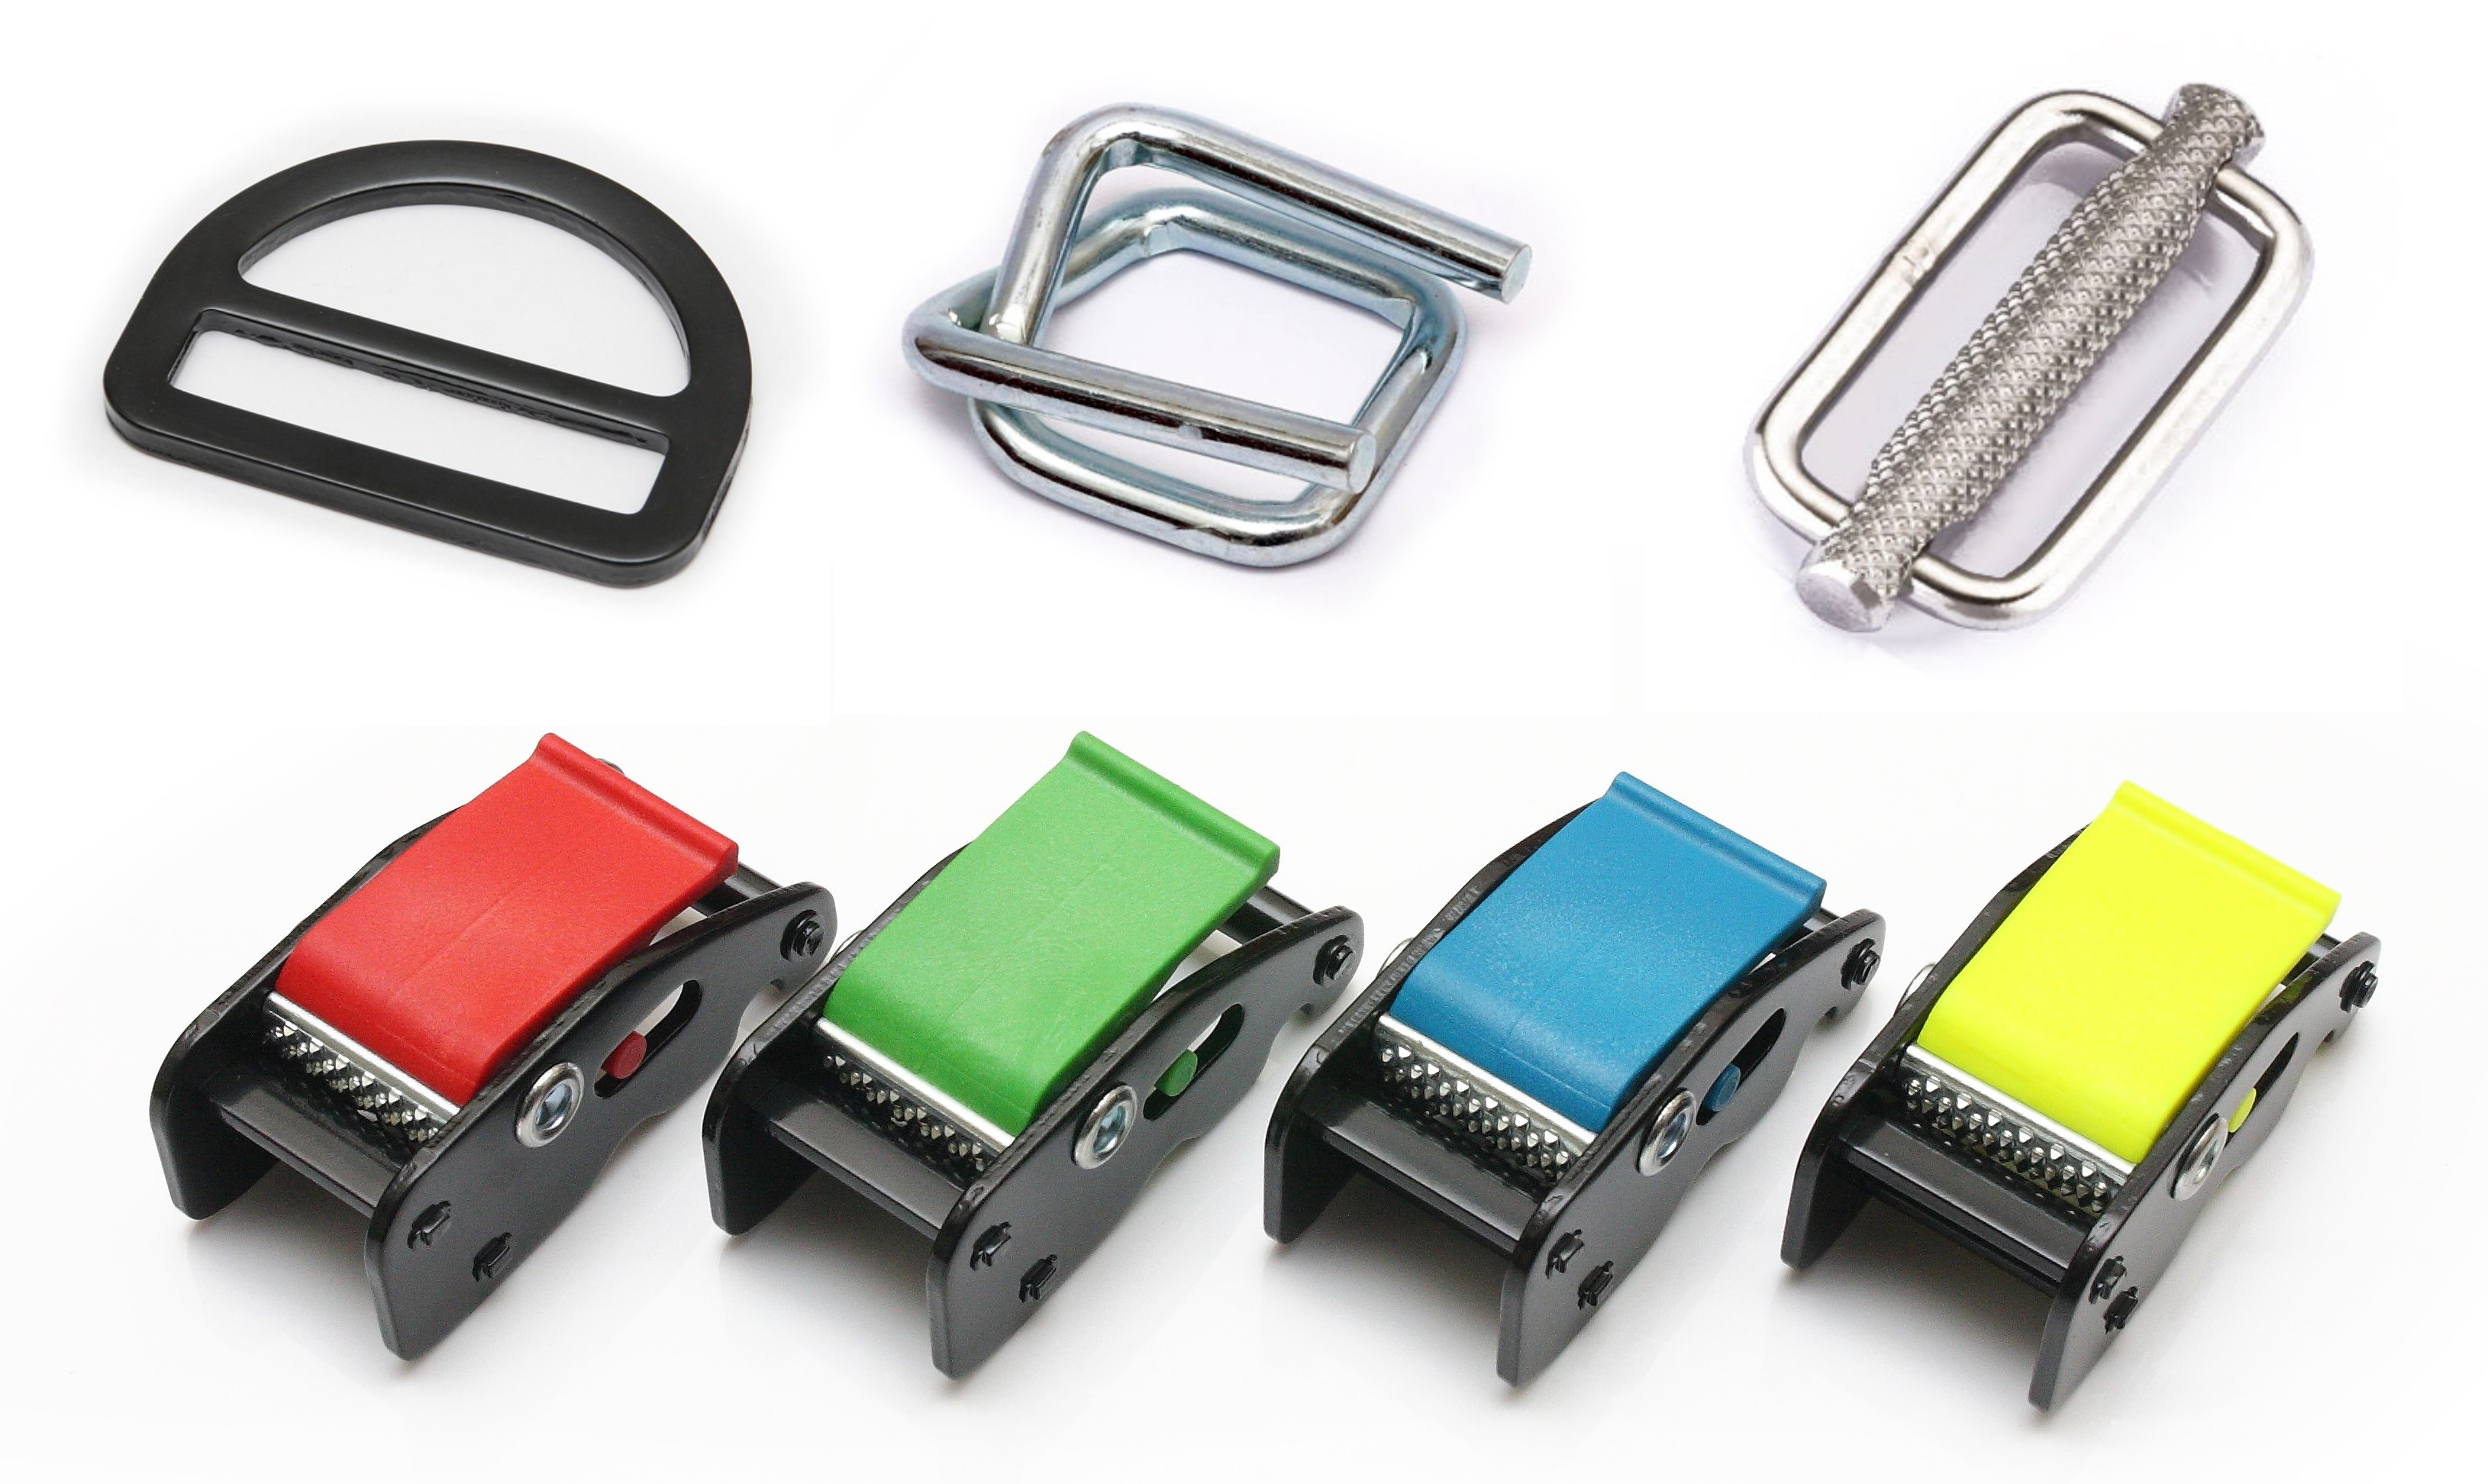 Truck / Trailer / Heavy Duty Buckle for Auto Exterior Accessories made by Win Chance Metal Co., LTD. 鈞成金屬股份有限公司 - MatchSupplier.com